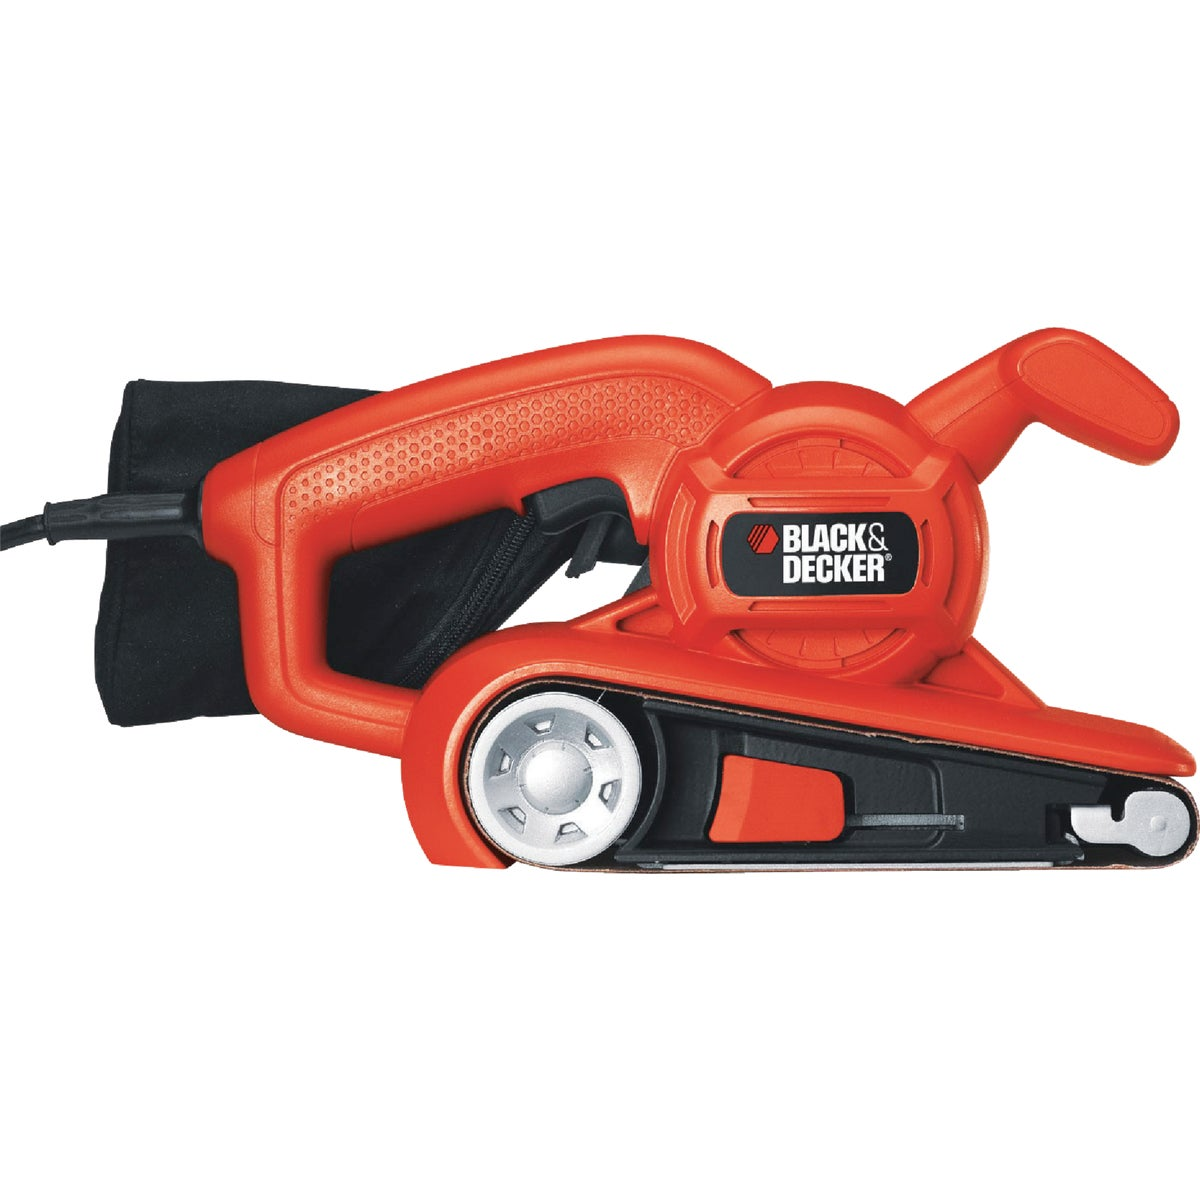 3X18 BELT SANDER - BR318 by Black & Decker